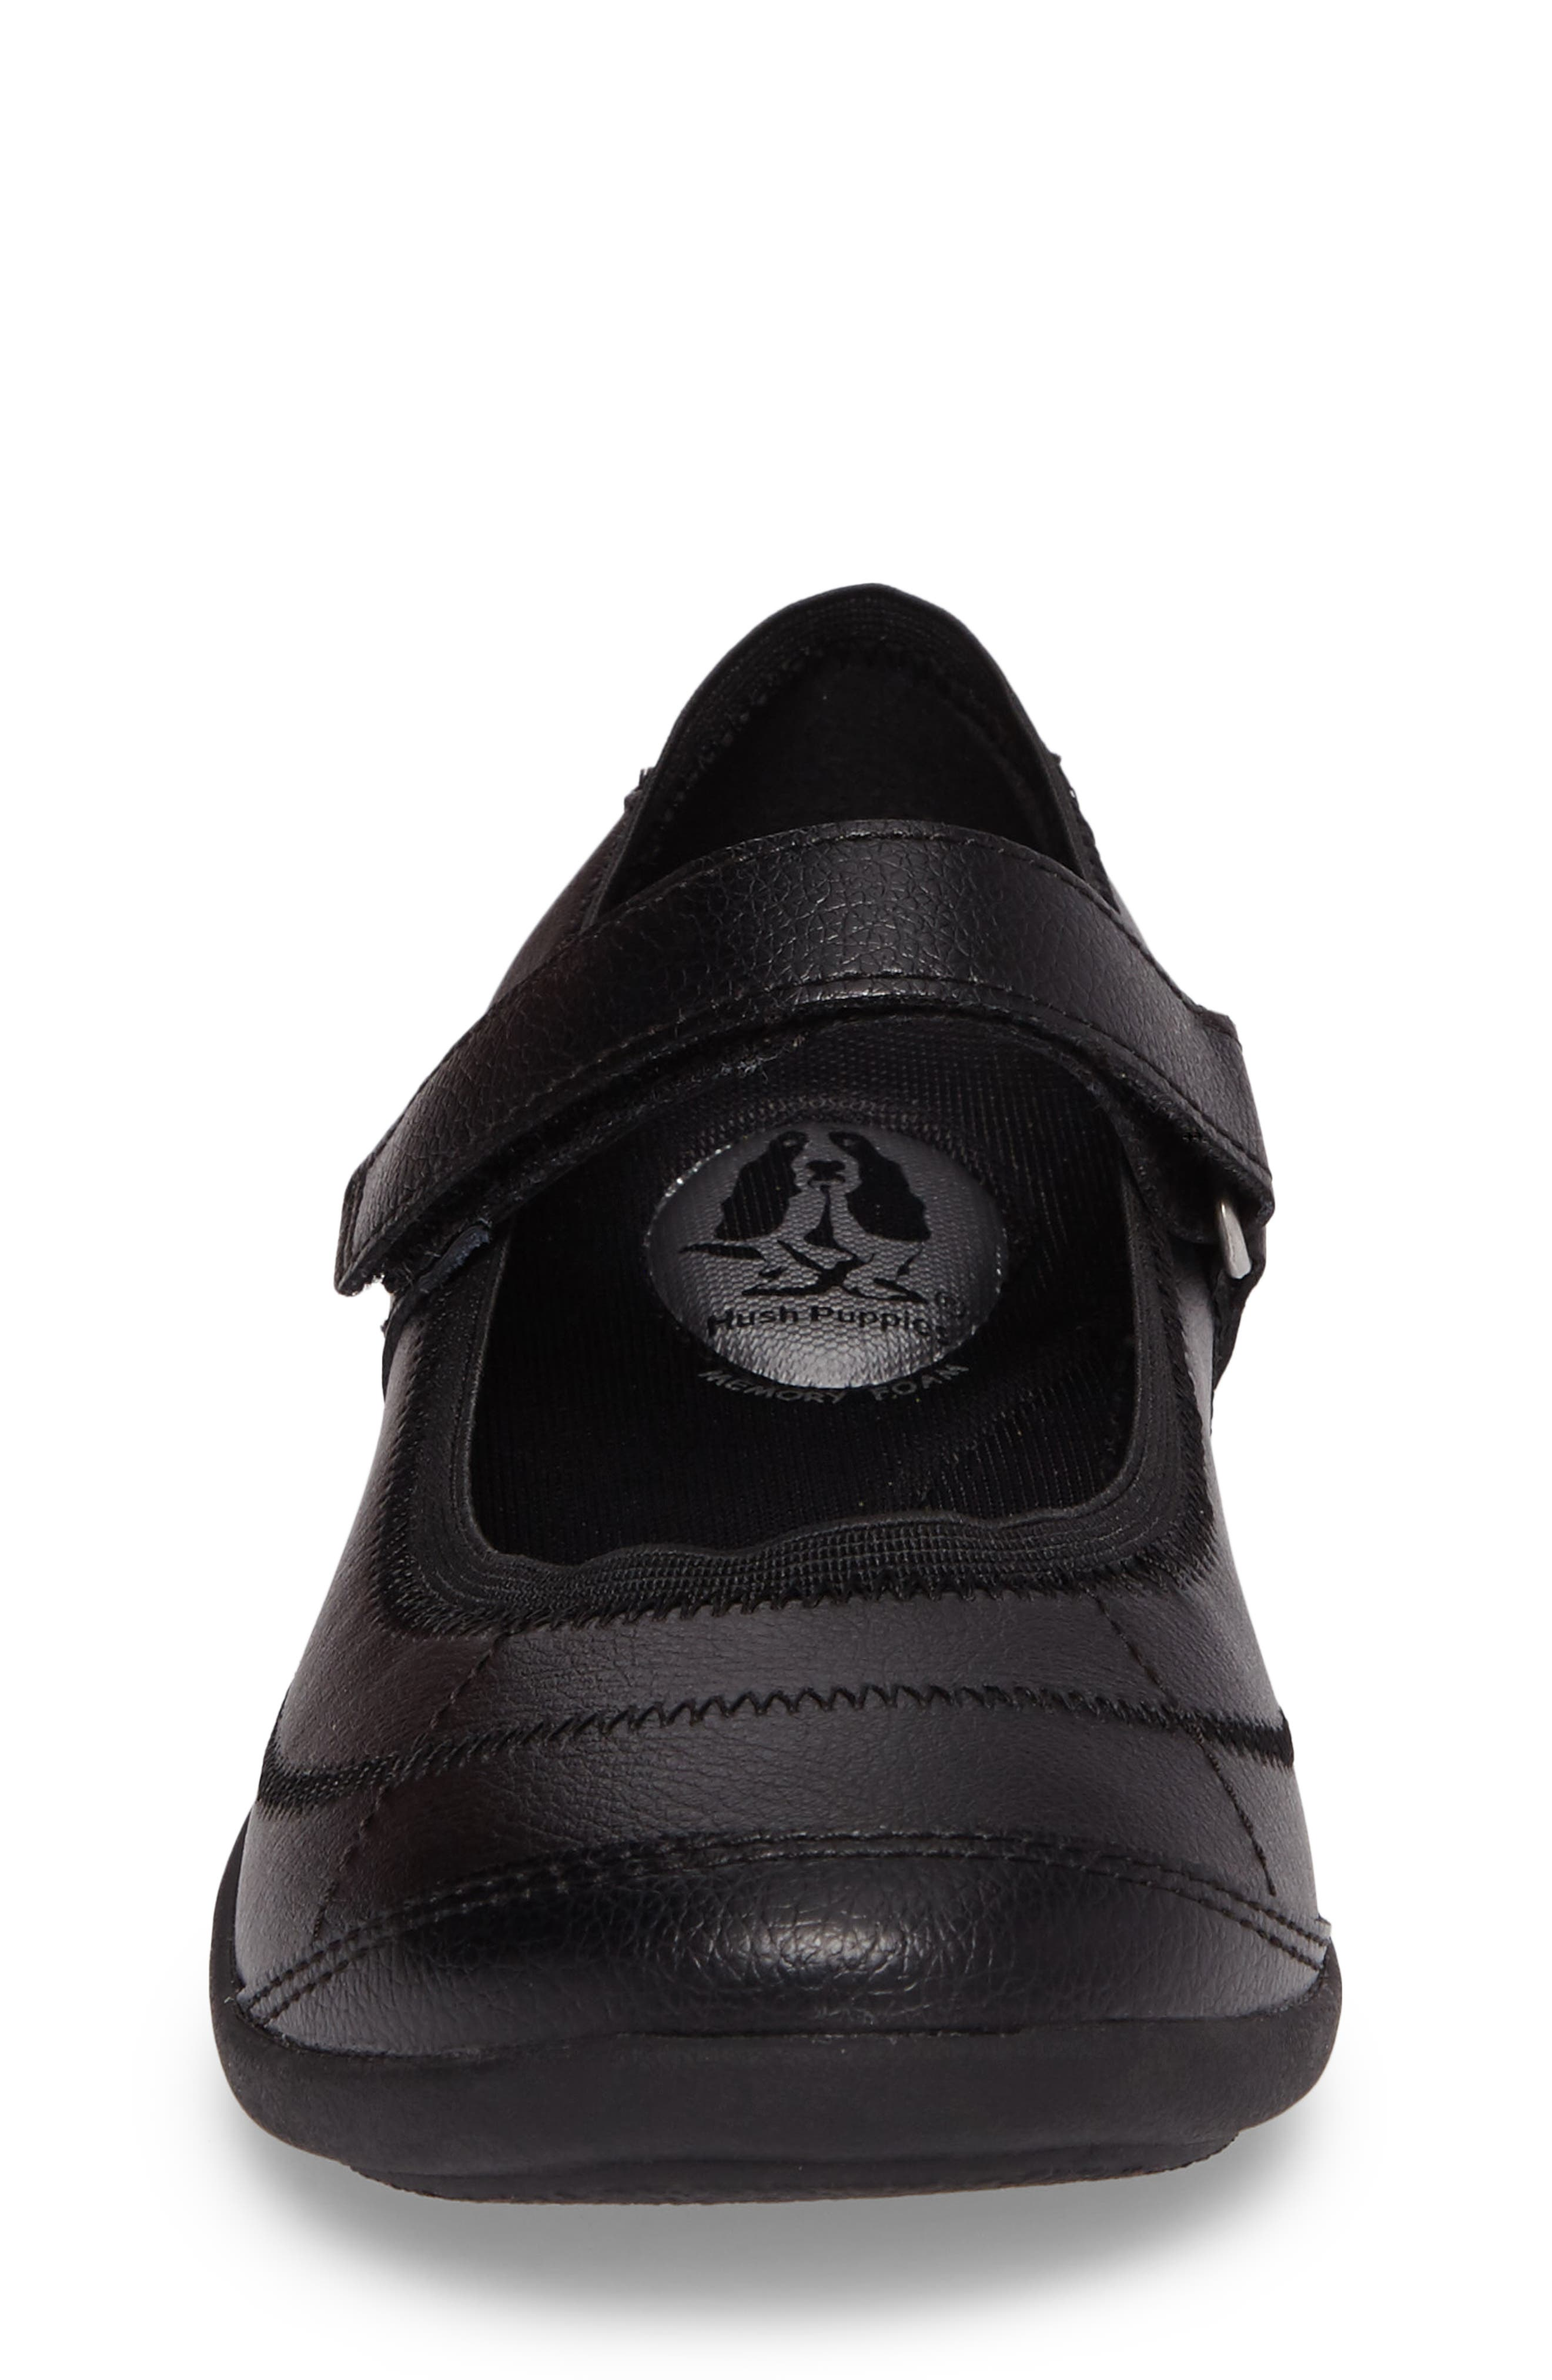 HUSH PUPPIES<SUP>®</SUP>, Reese Mary Jane Flat, Alternate thumbnail 4, color, BLACK LEATHER